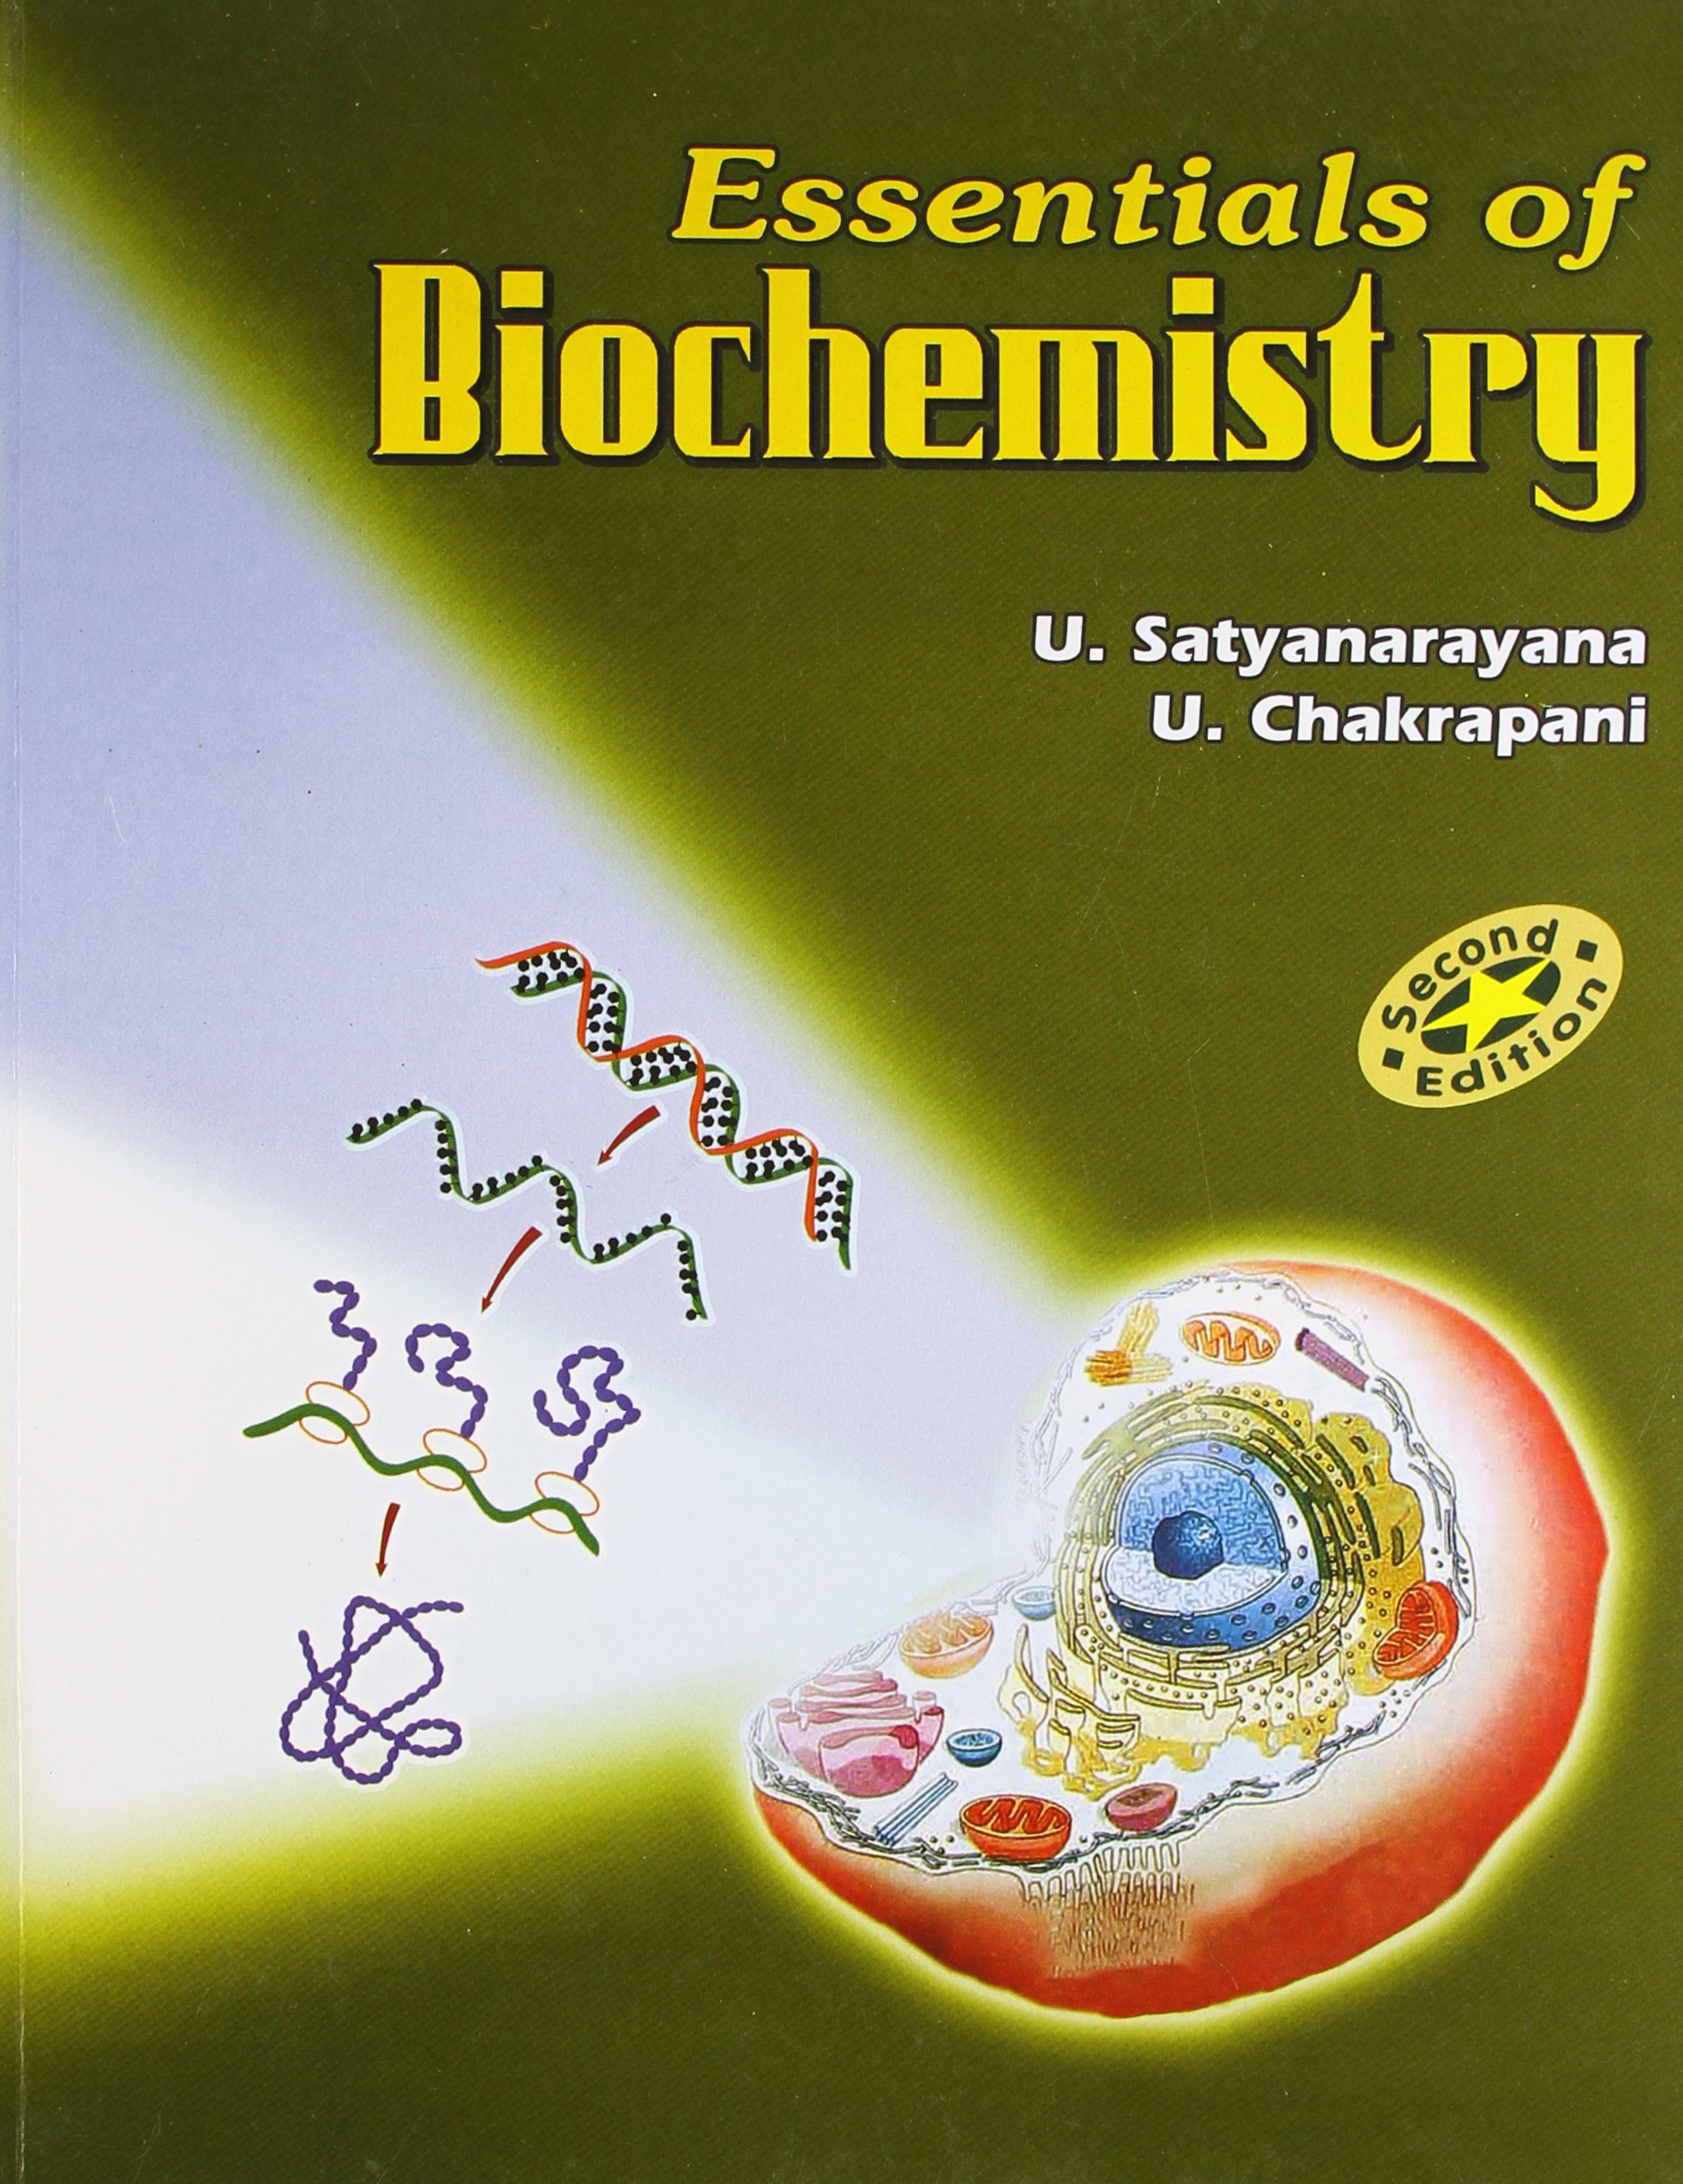 Buy Essentials Of Biochemistry, Second Edition Book Online at Low Prices in  India | Essentials Of Biochemistry, Second Edition Reviews & Ratings -  Amazon.in